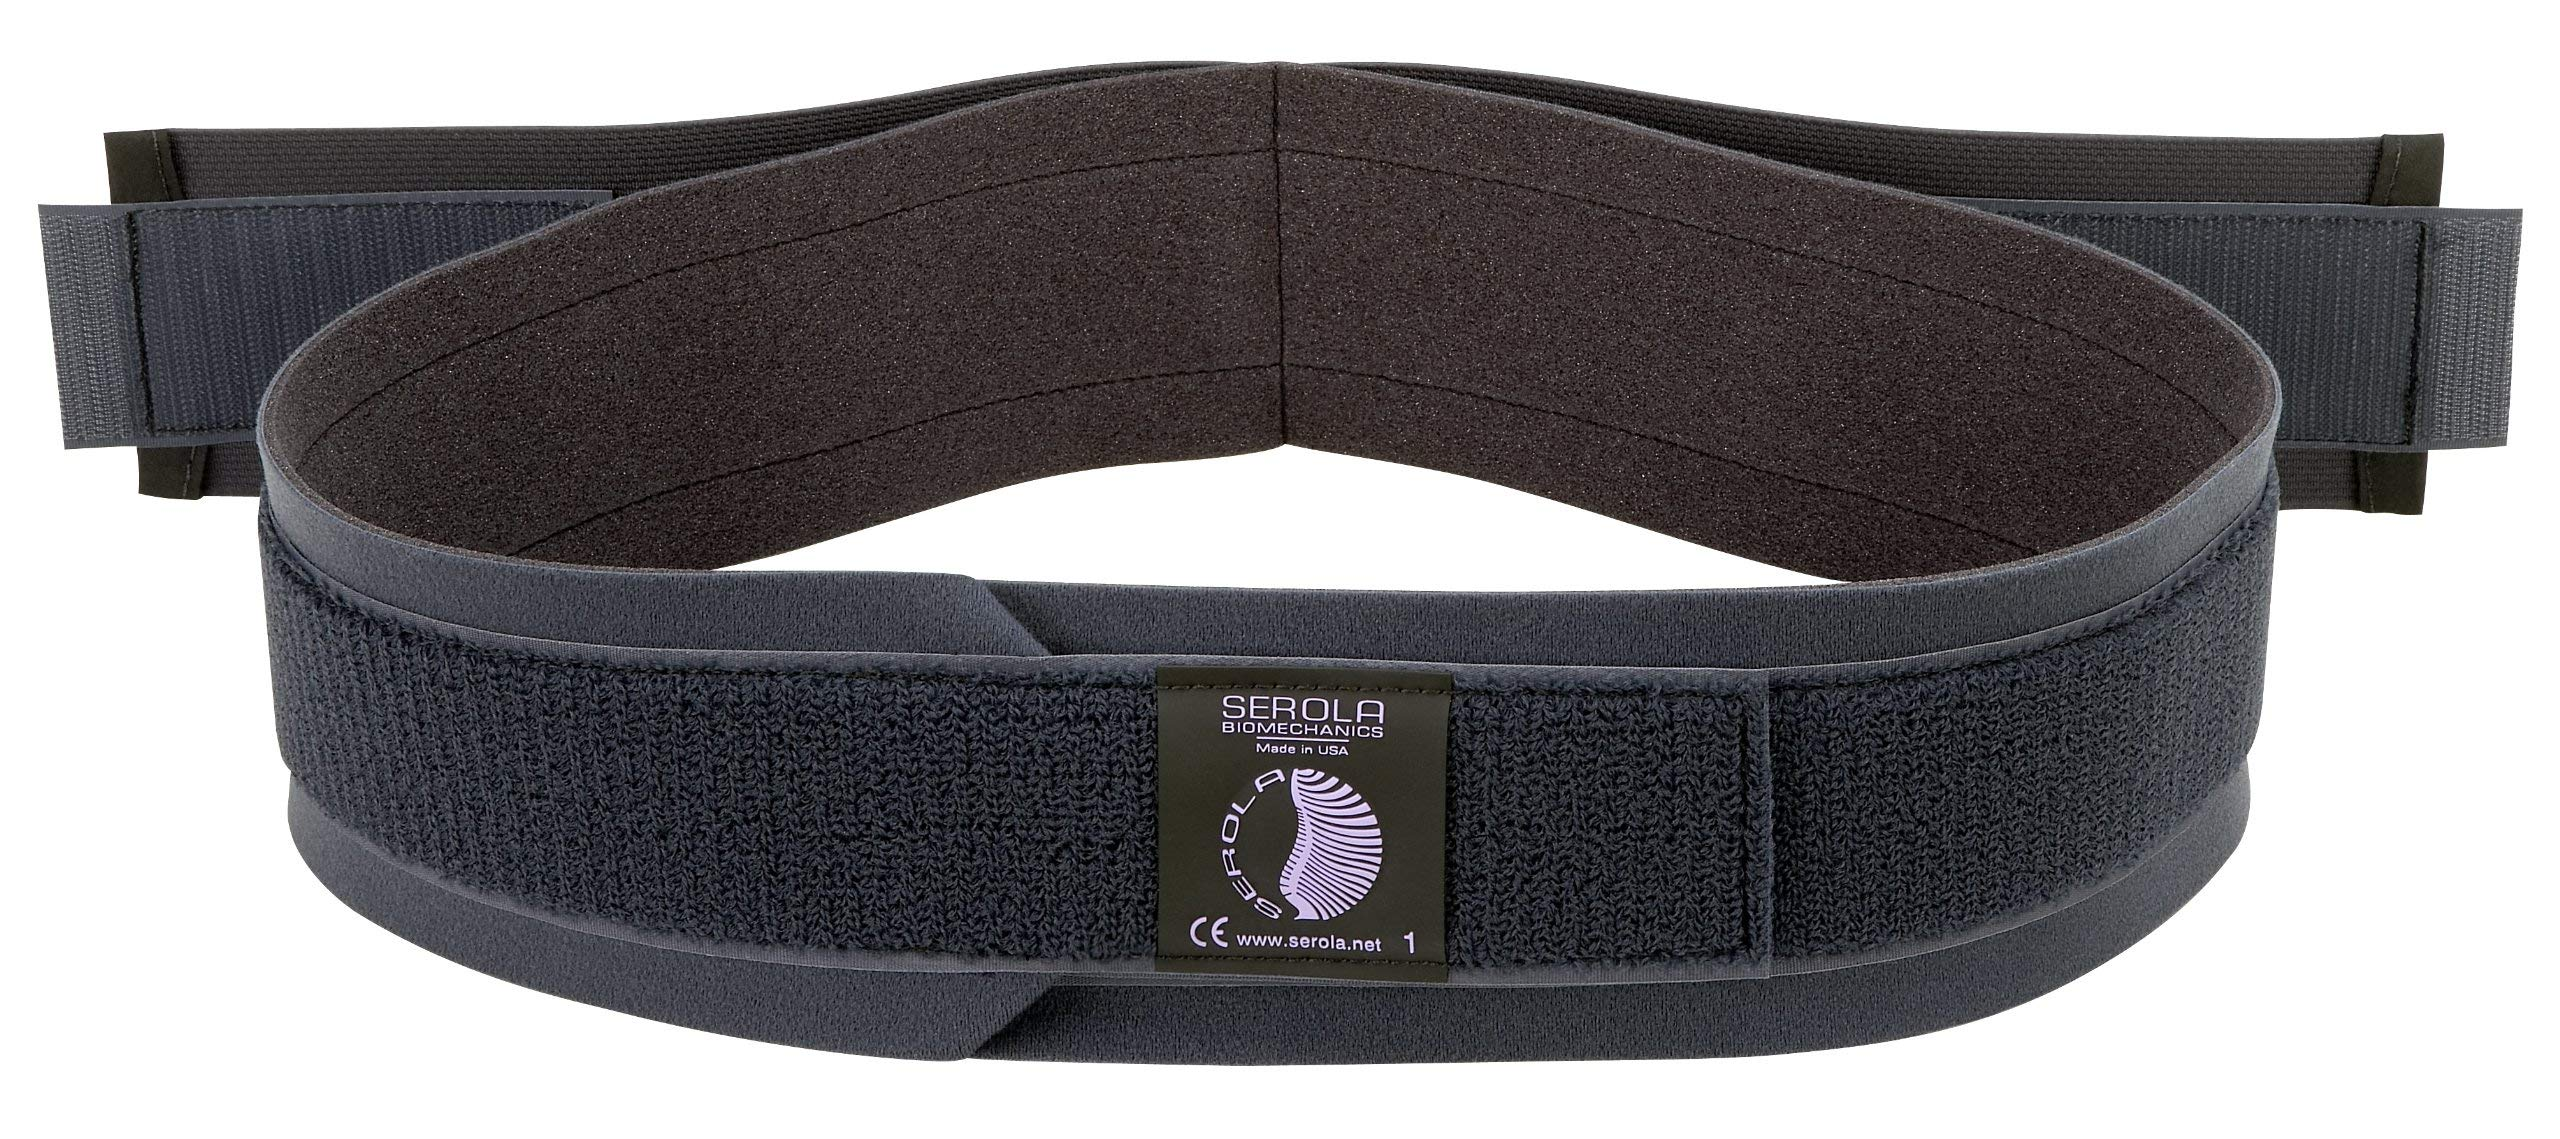 Serola Maternity Support Belt, Medium, Sacroiliac Belt, Pregnancy, Comfortable Pelvic Support for Waist, Back, and Abdomen, Belly Band Brace, Relieves Lower Back Pain and Supports Instability